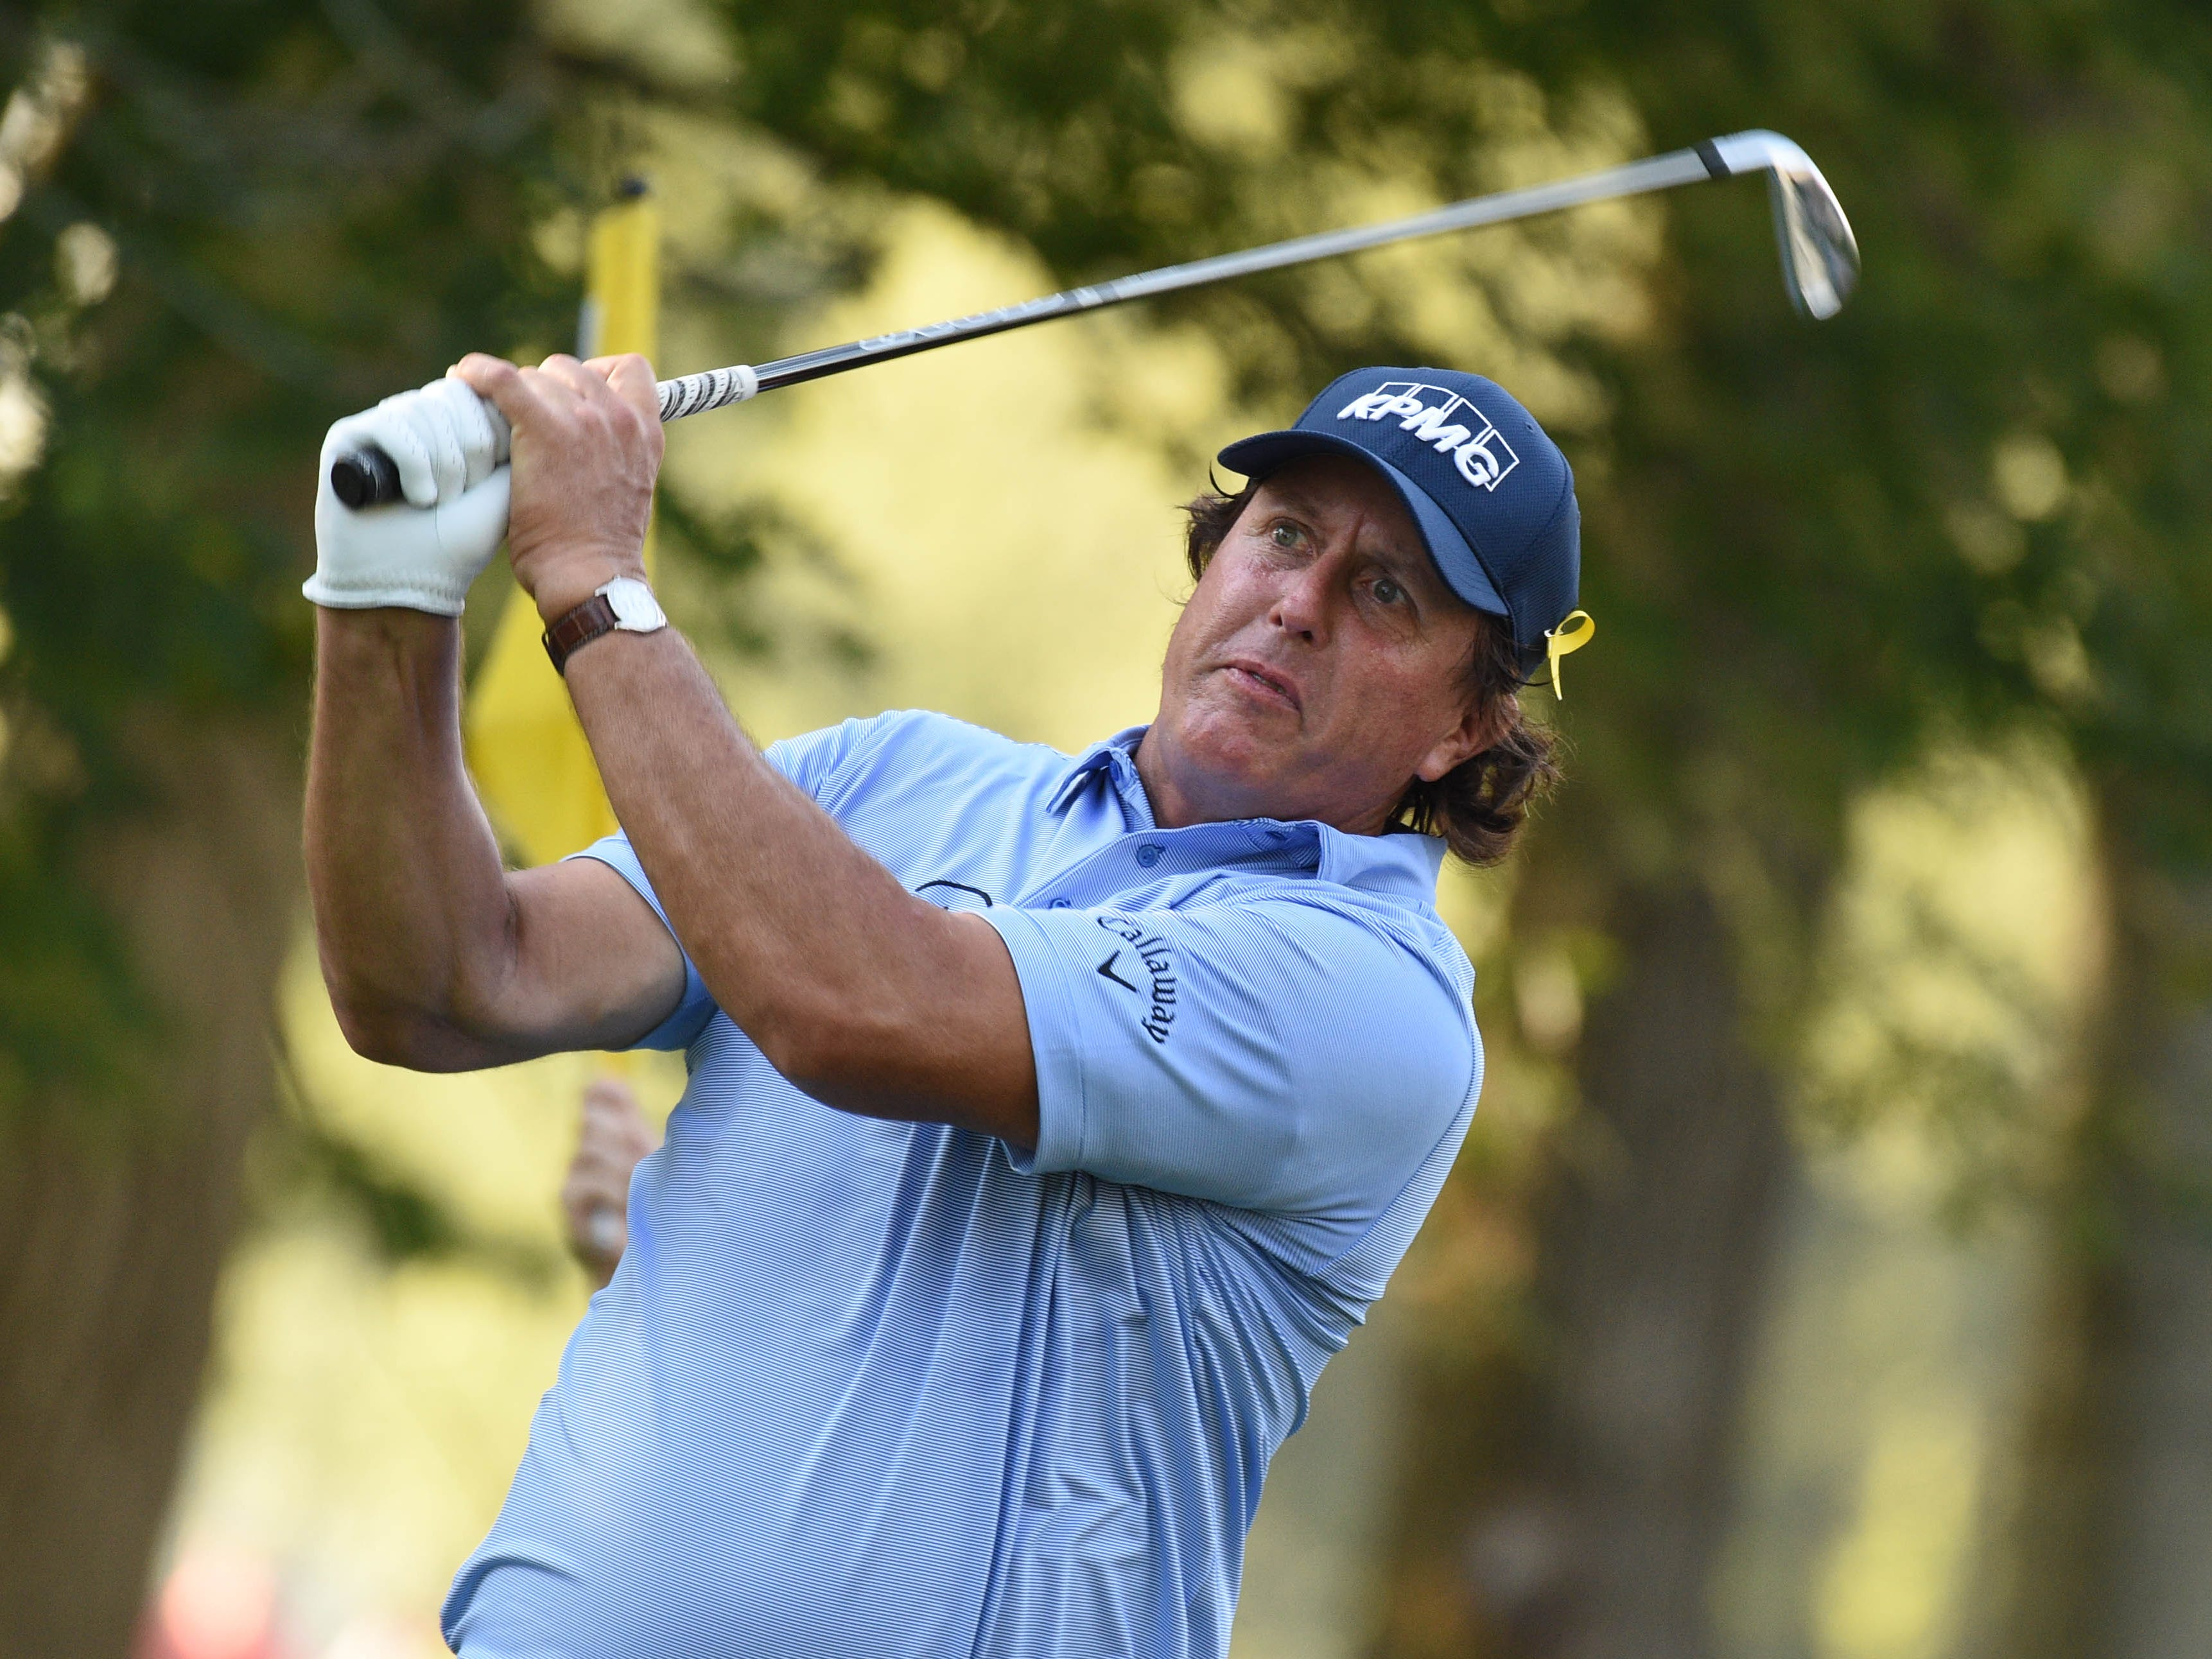 Phil Mickelson hits his tee shot on the 10th hole during the first round of the PGA Championship.